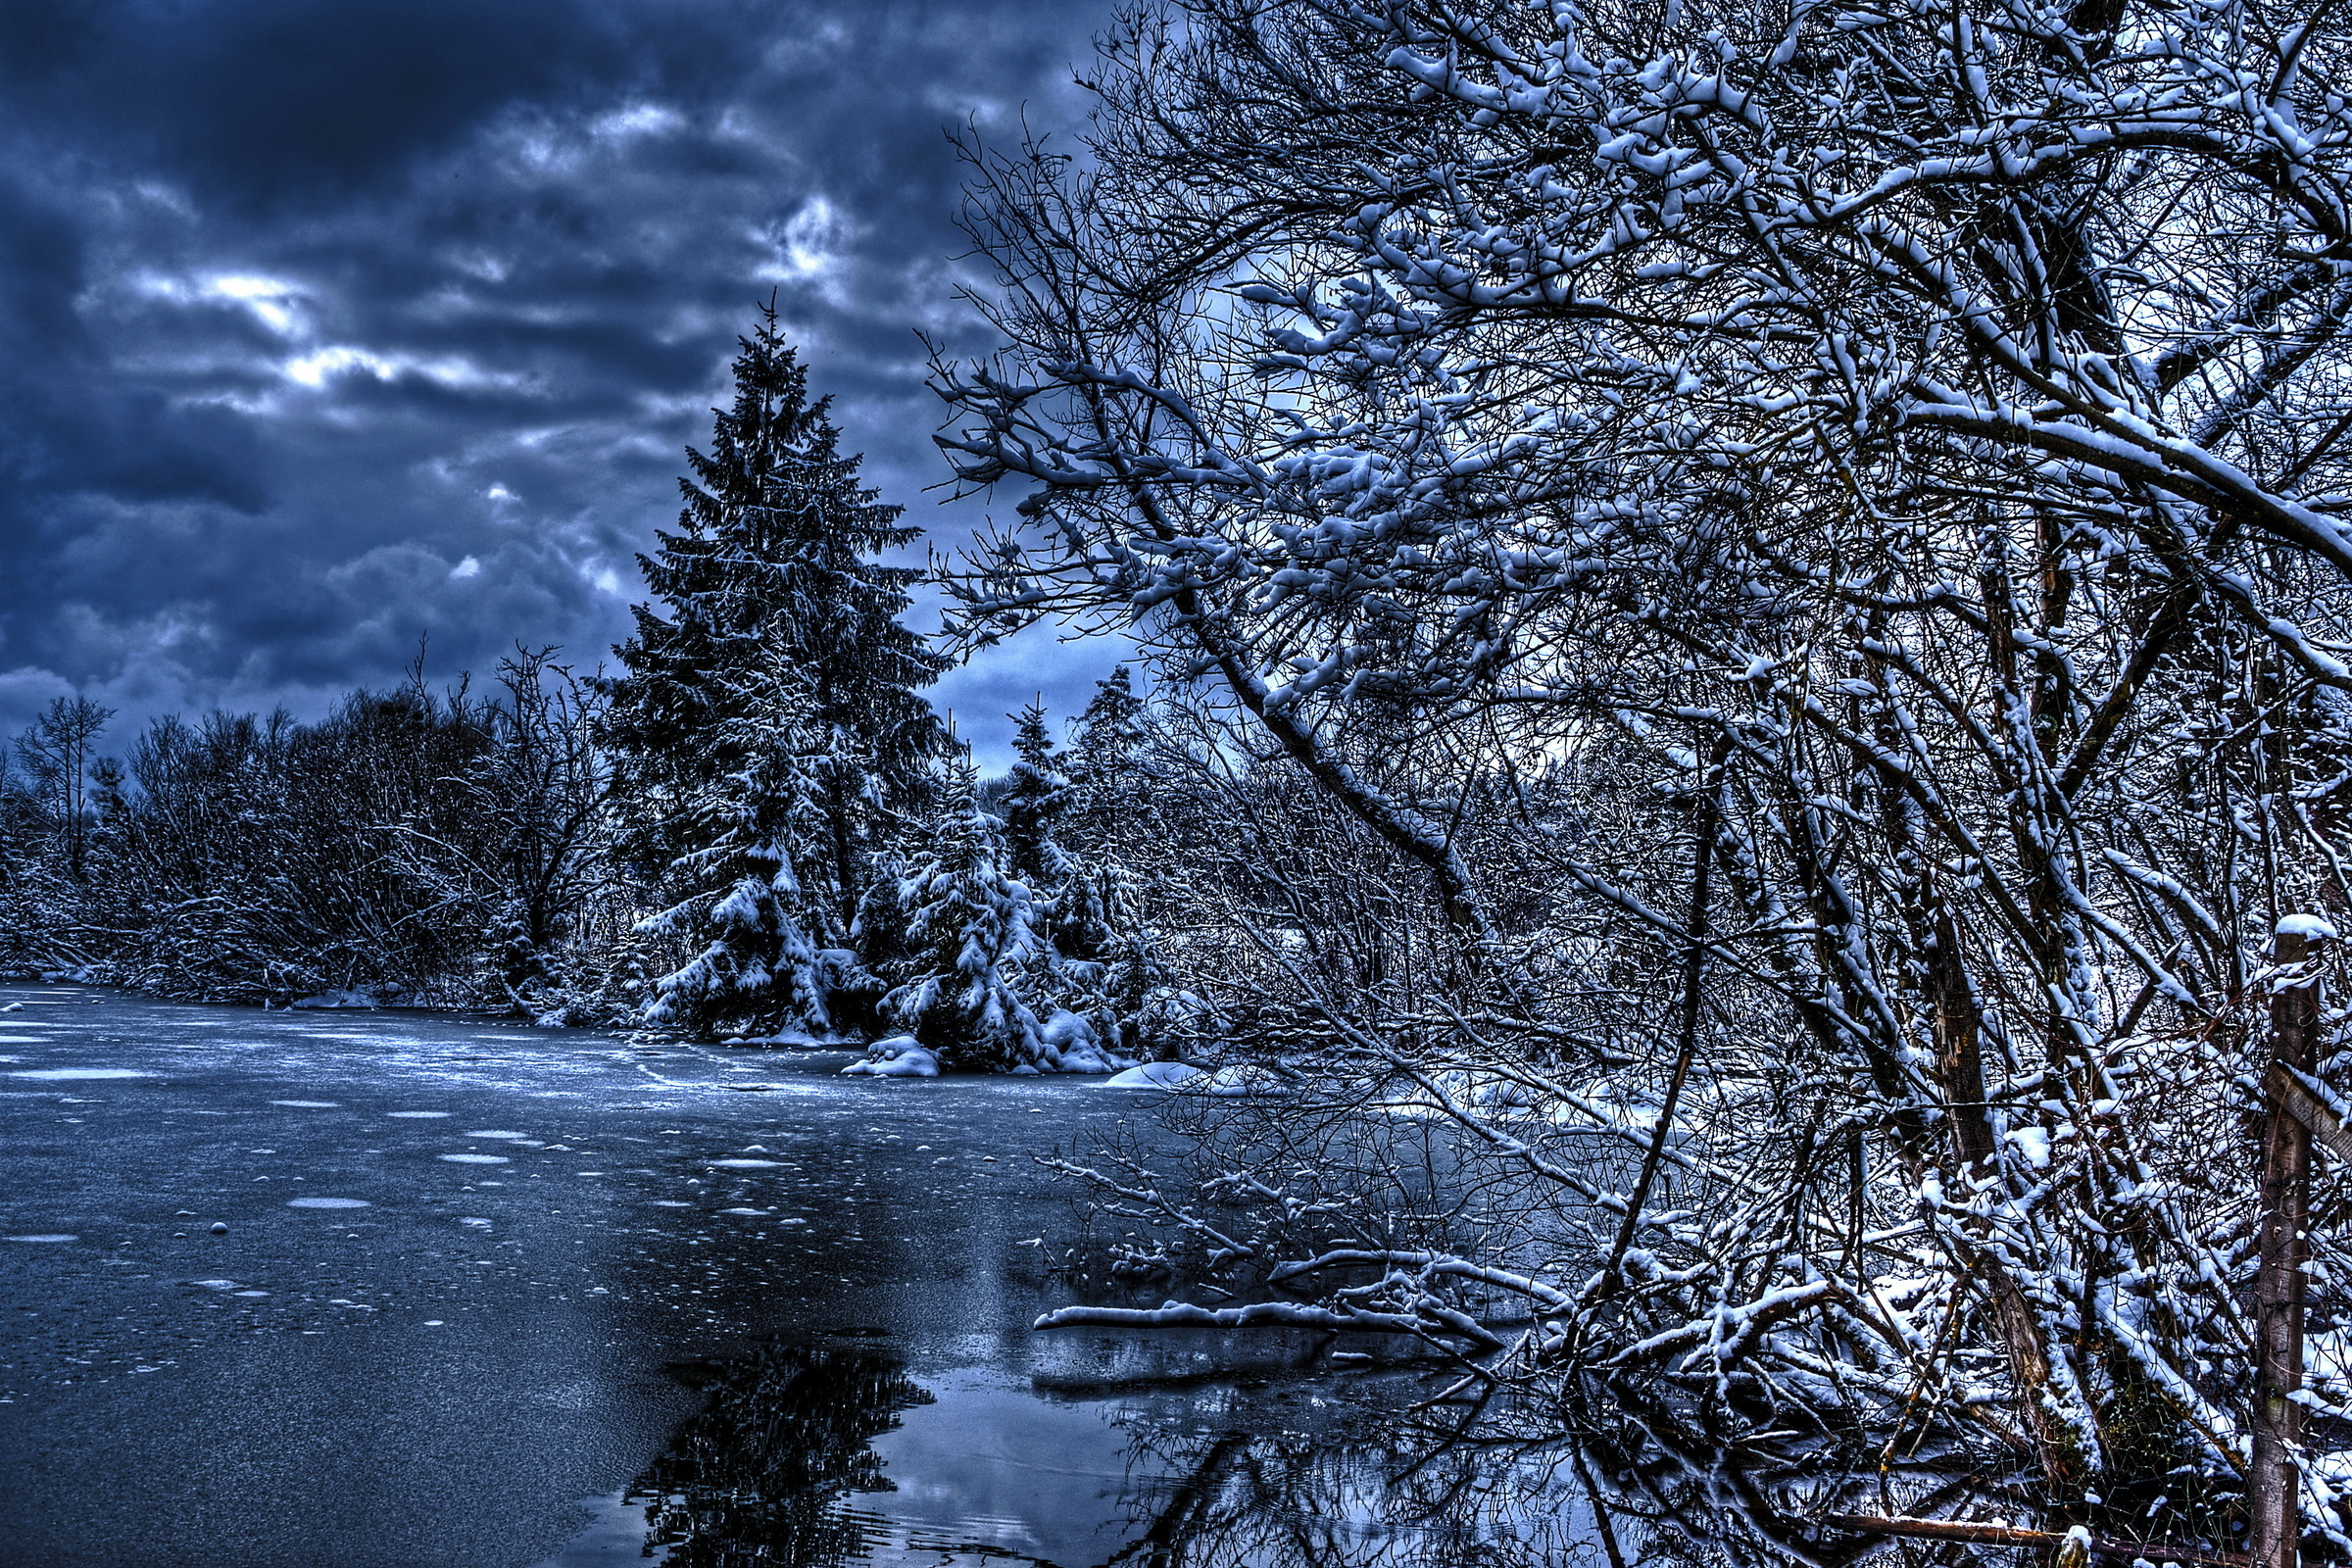 88400 download wallpaper Hdr, Lake, Winter, Nature, Rivers, Trees, Ice, Snow screensavers and pictures for free